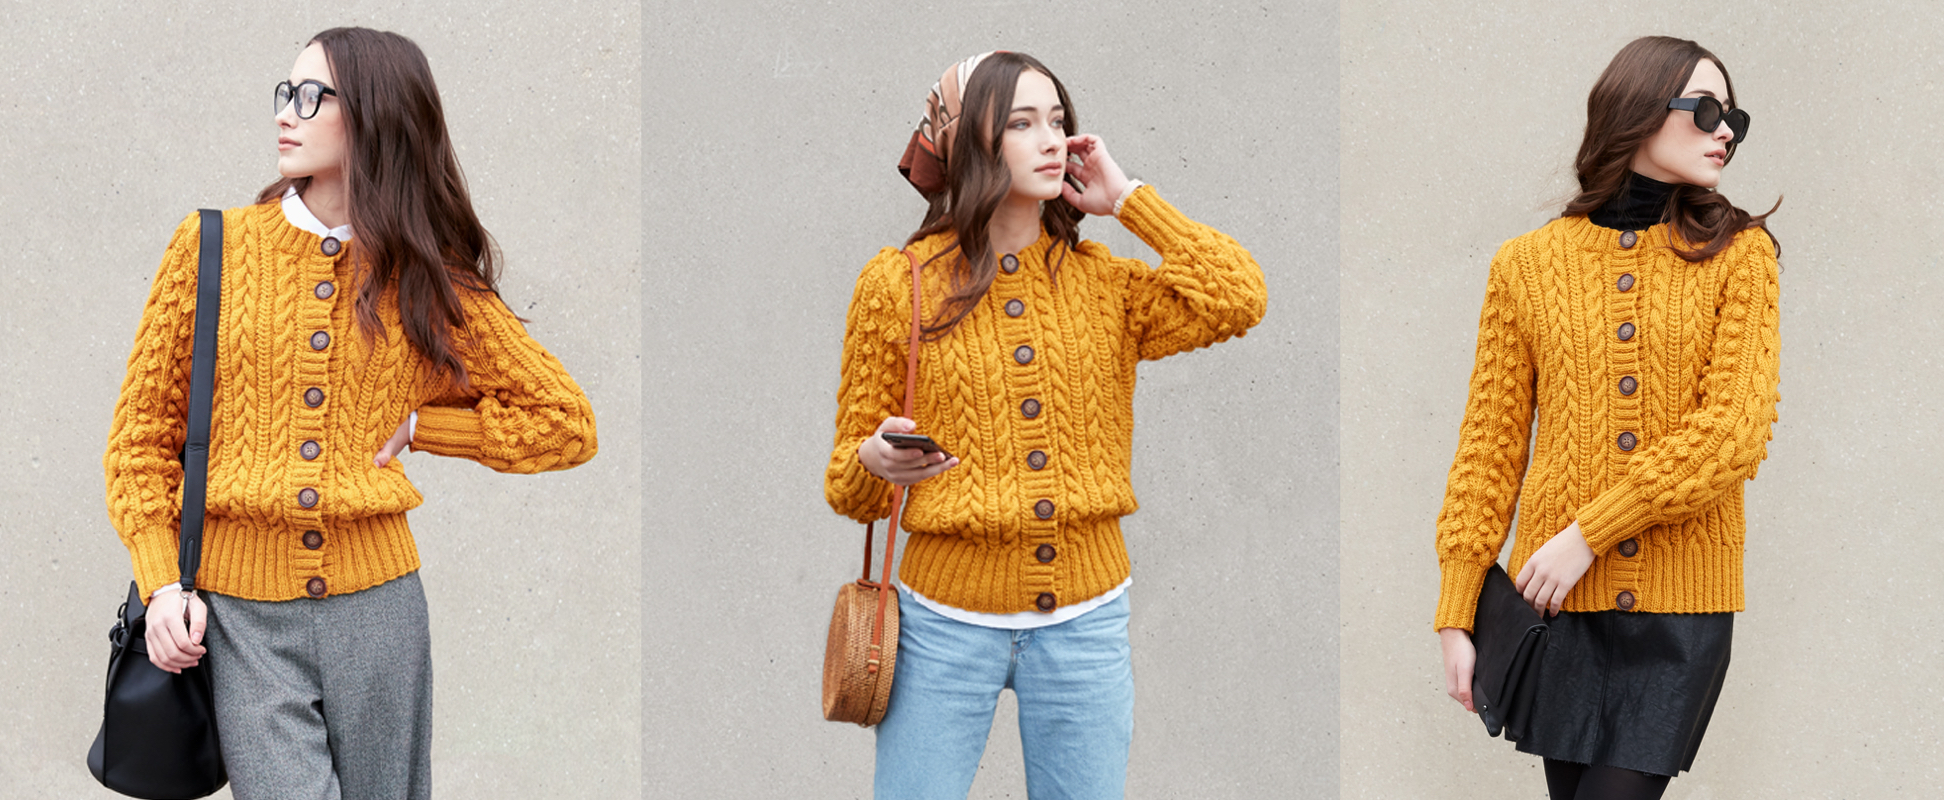 Knitting a Cardigan with Gorgeous Cables & Bobbles